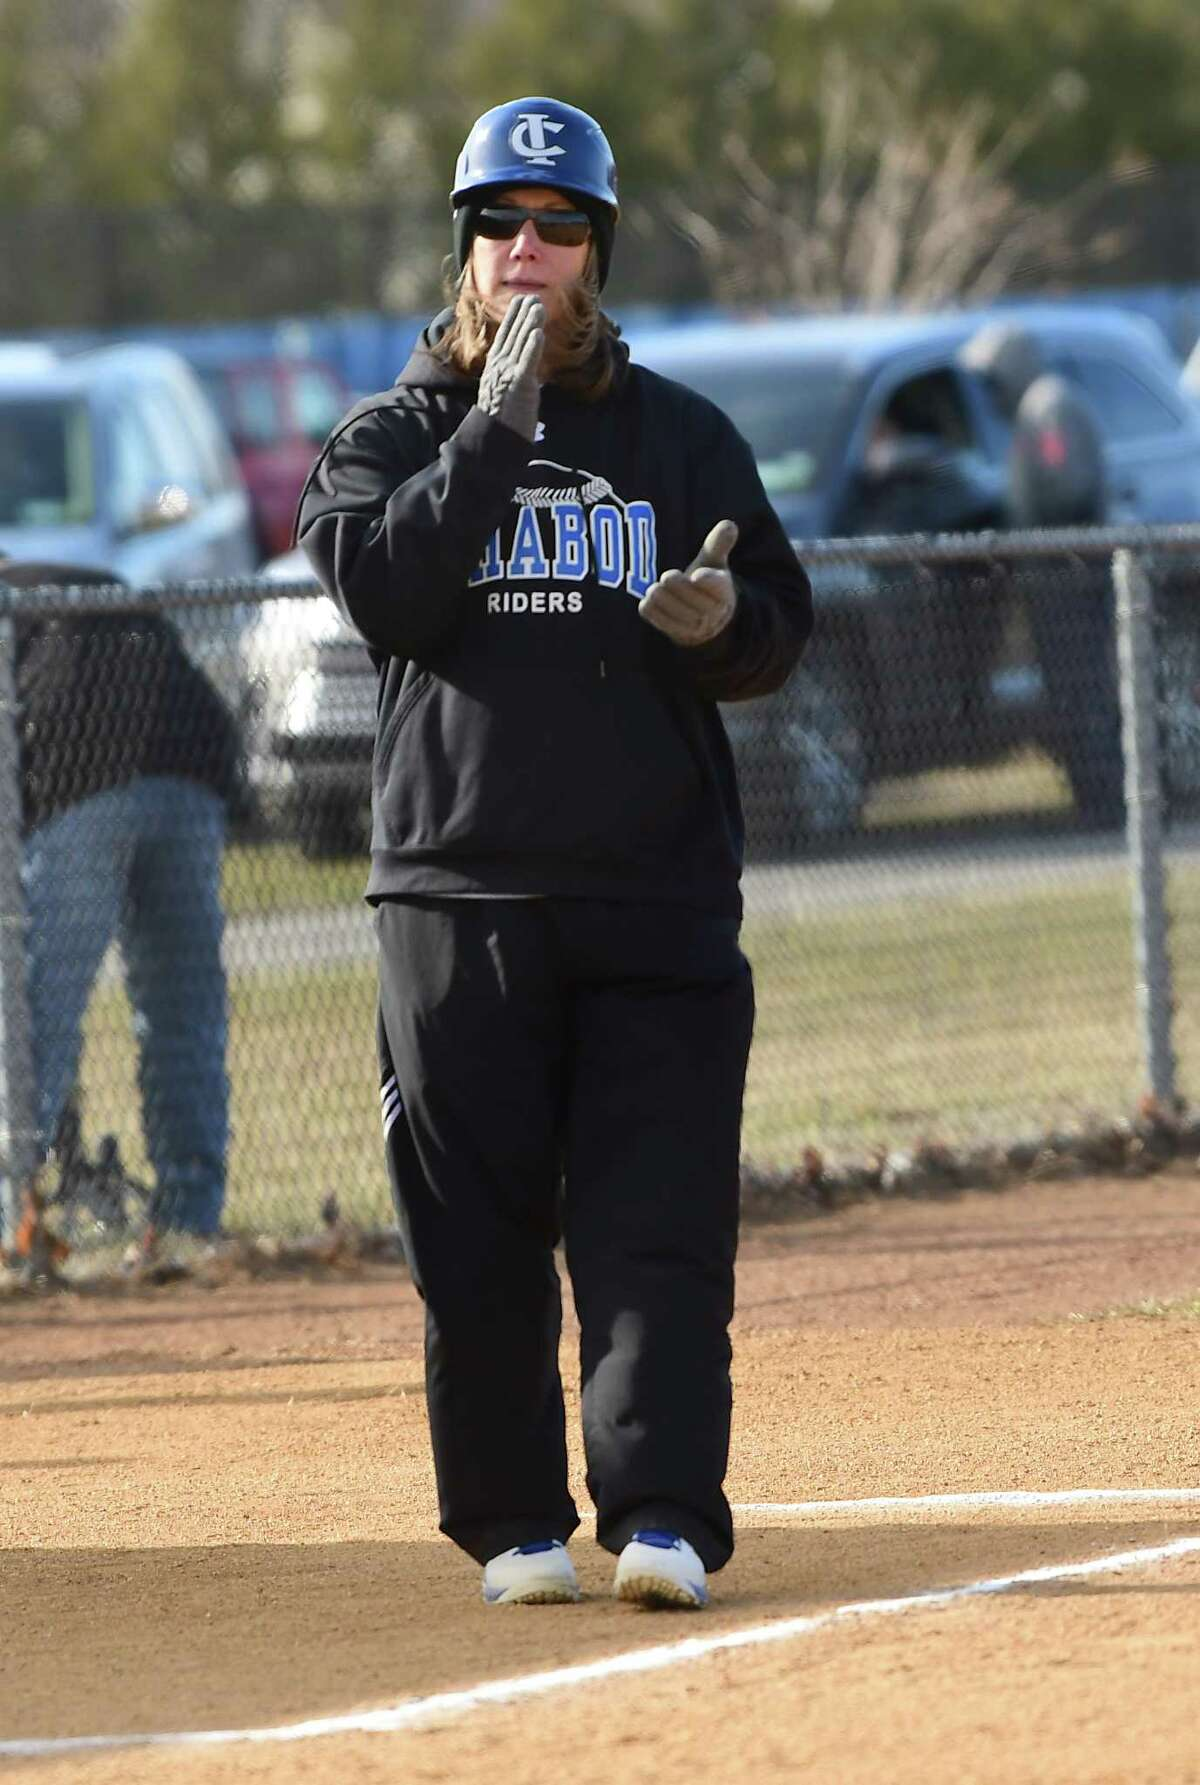 Ichabod Crane coach Tracy Natransky gives signals to a batter during a softball game against Holy Names on Thursday, April 4, 2019 in Valatie, N.Y. (Lori Van Buren/Times Union)